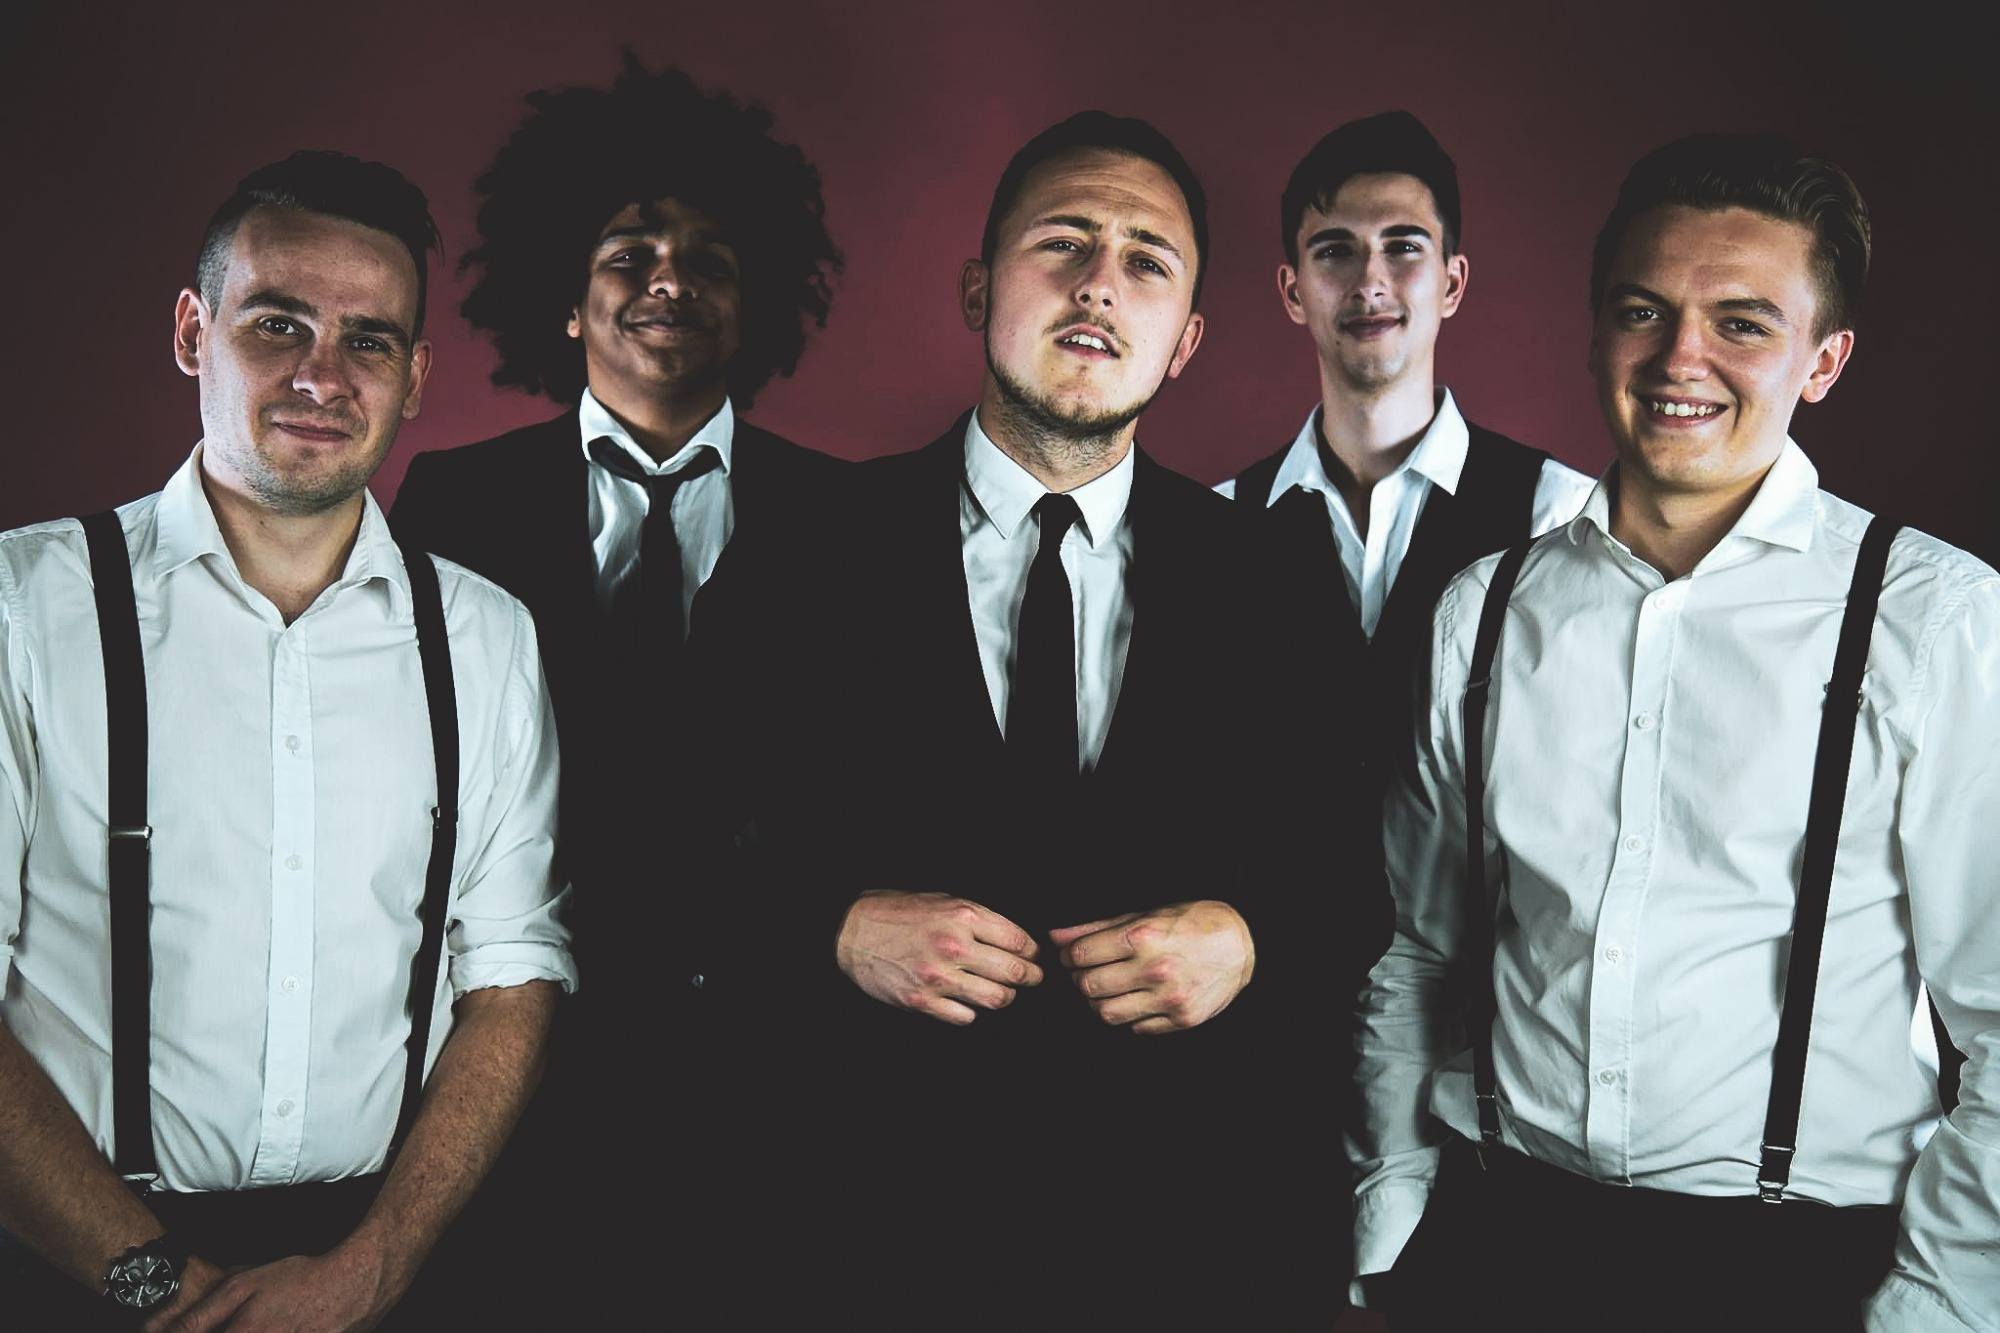 Promo Stardust Swing Soul and Pop Band London